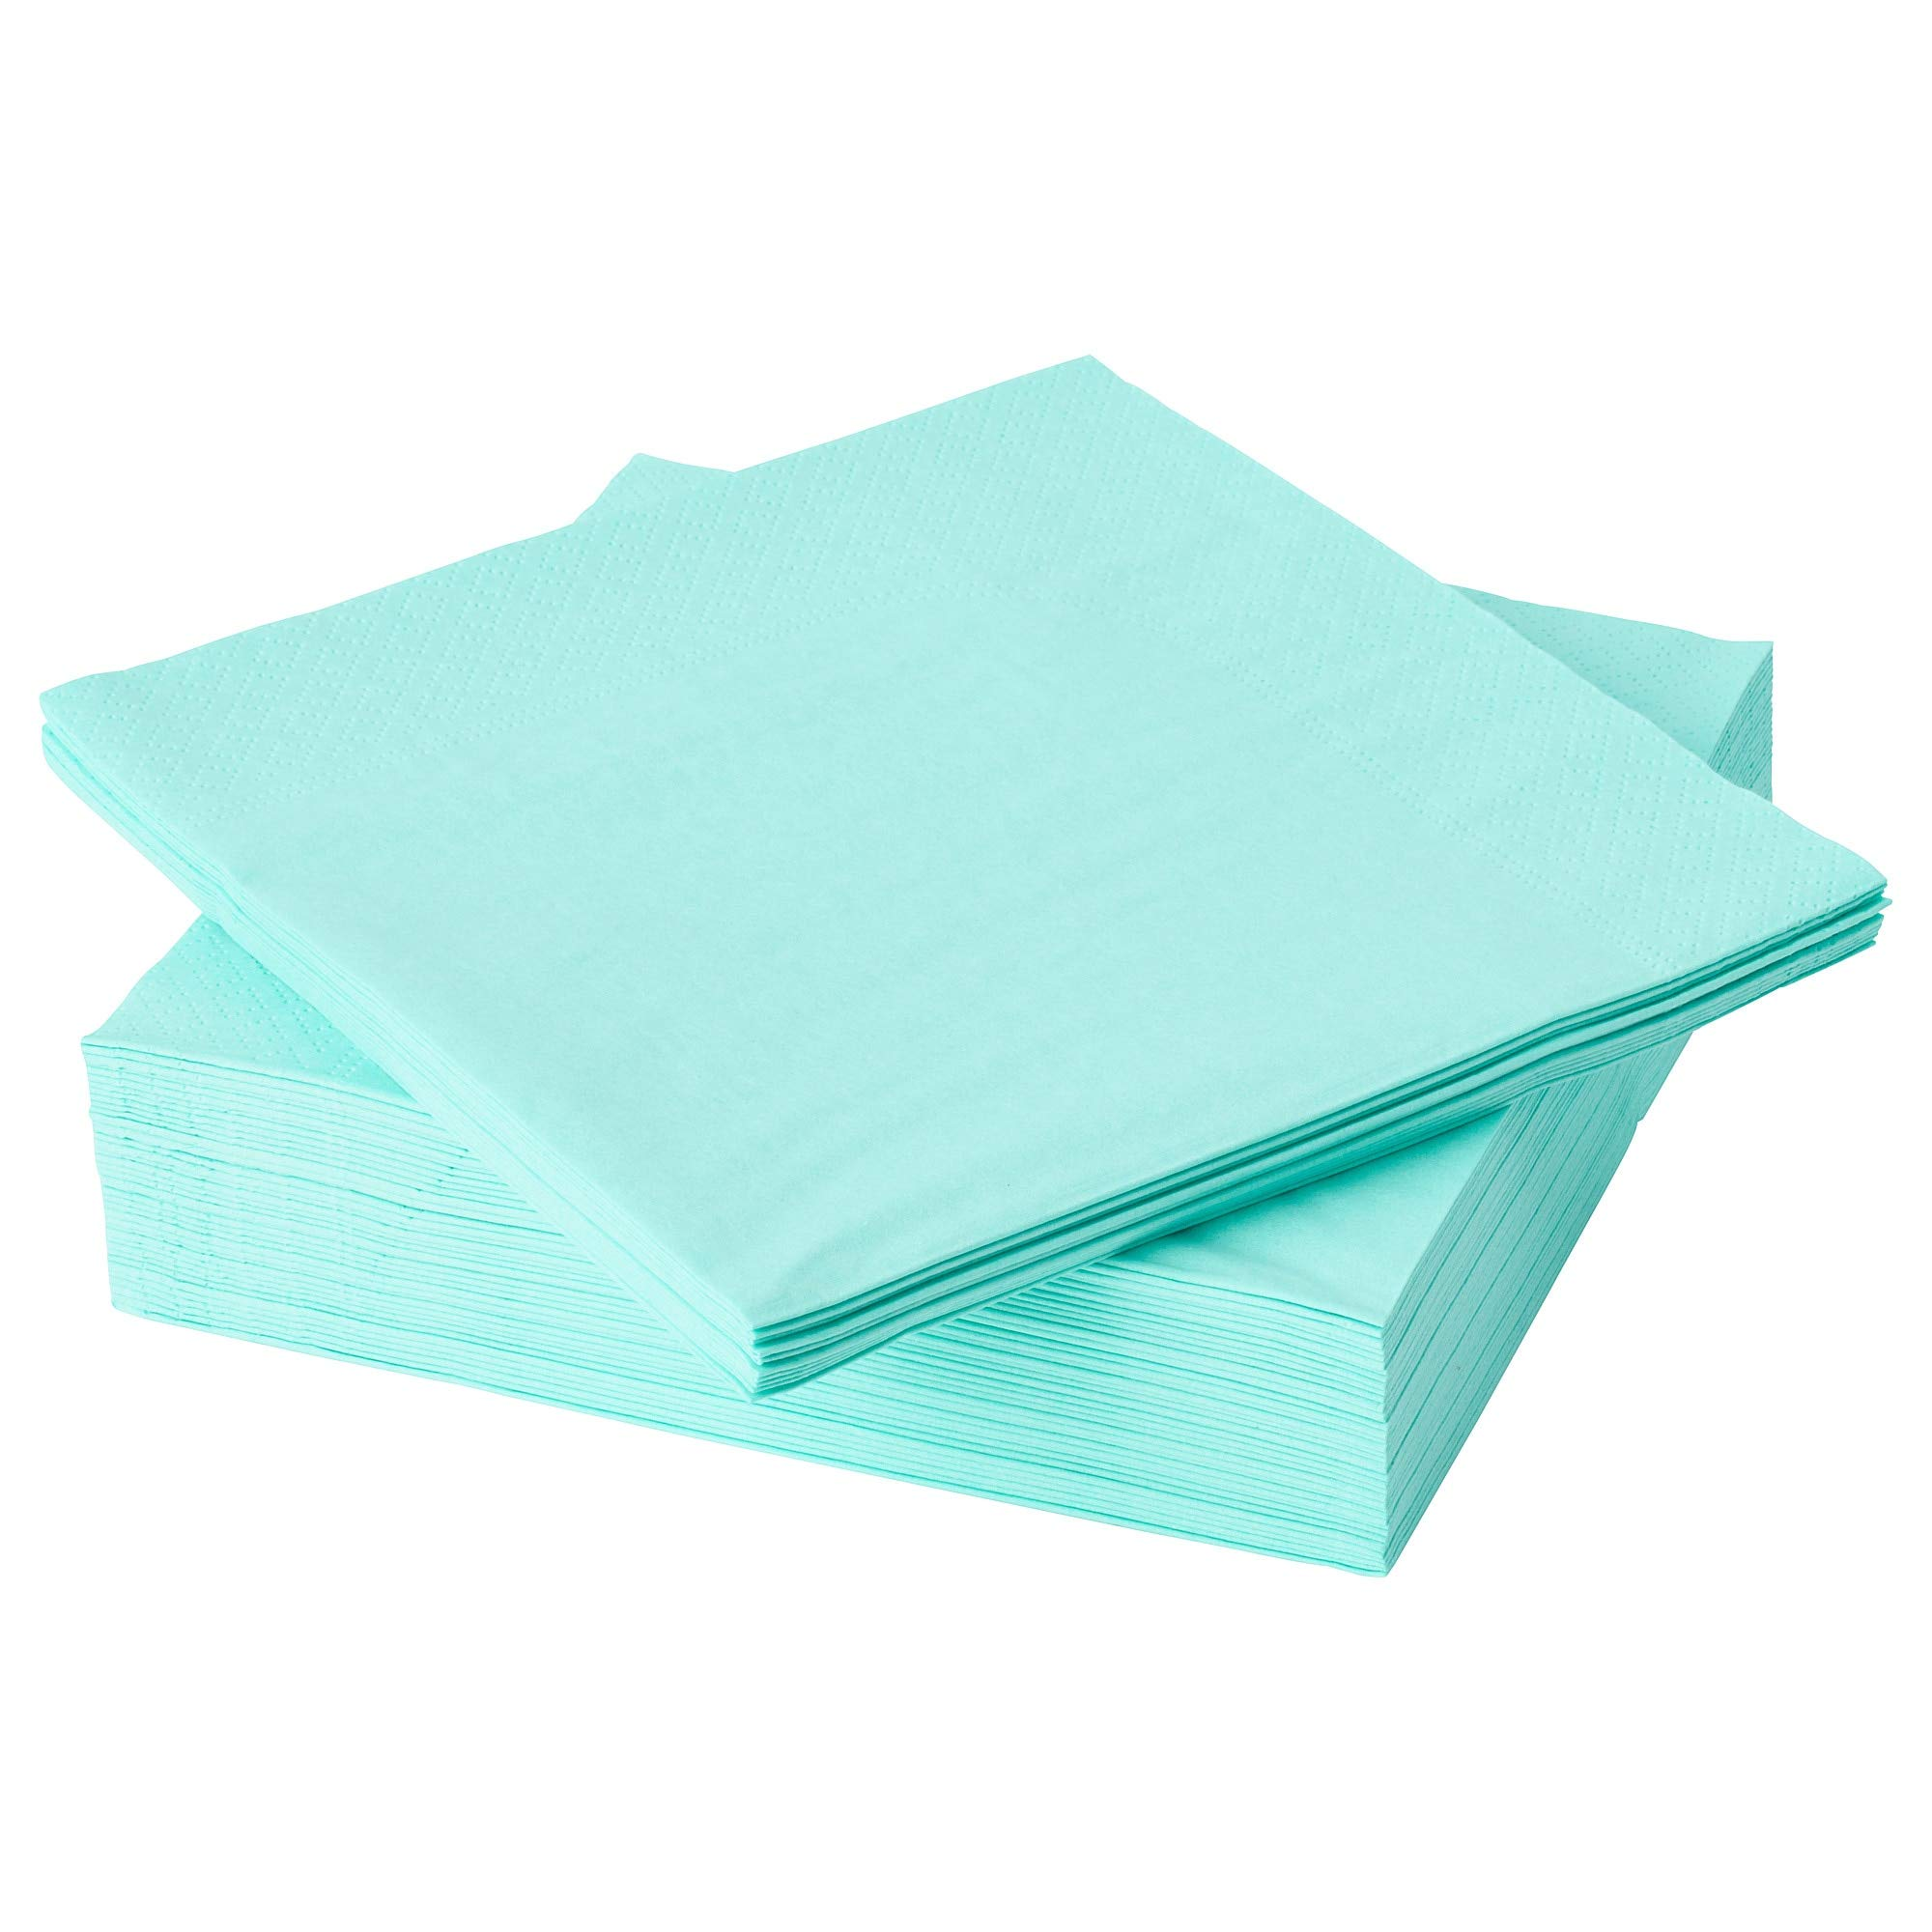 IKEA FANTASTISK High Absorbent Paper Napkin, Light Turquoise (100)